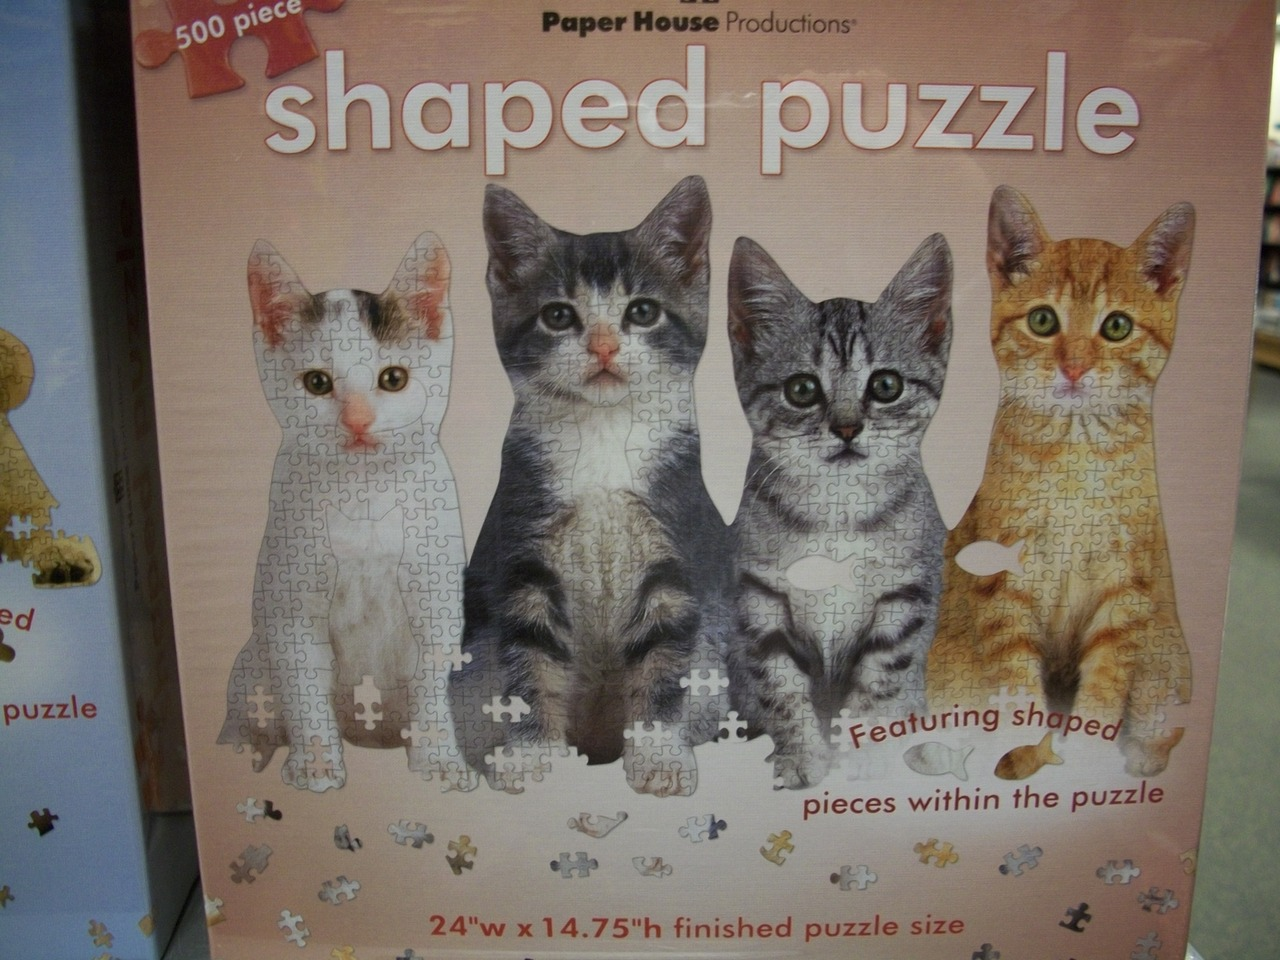 Cat people of Tumblr, this puzzle is insane: it's in the shape of fish puzzle pieces, and the result? KITTIES!